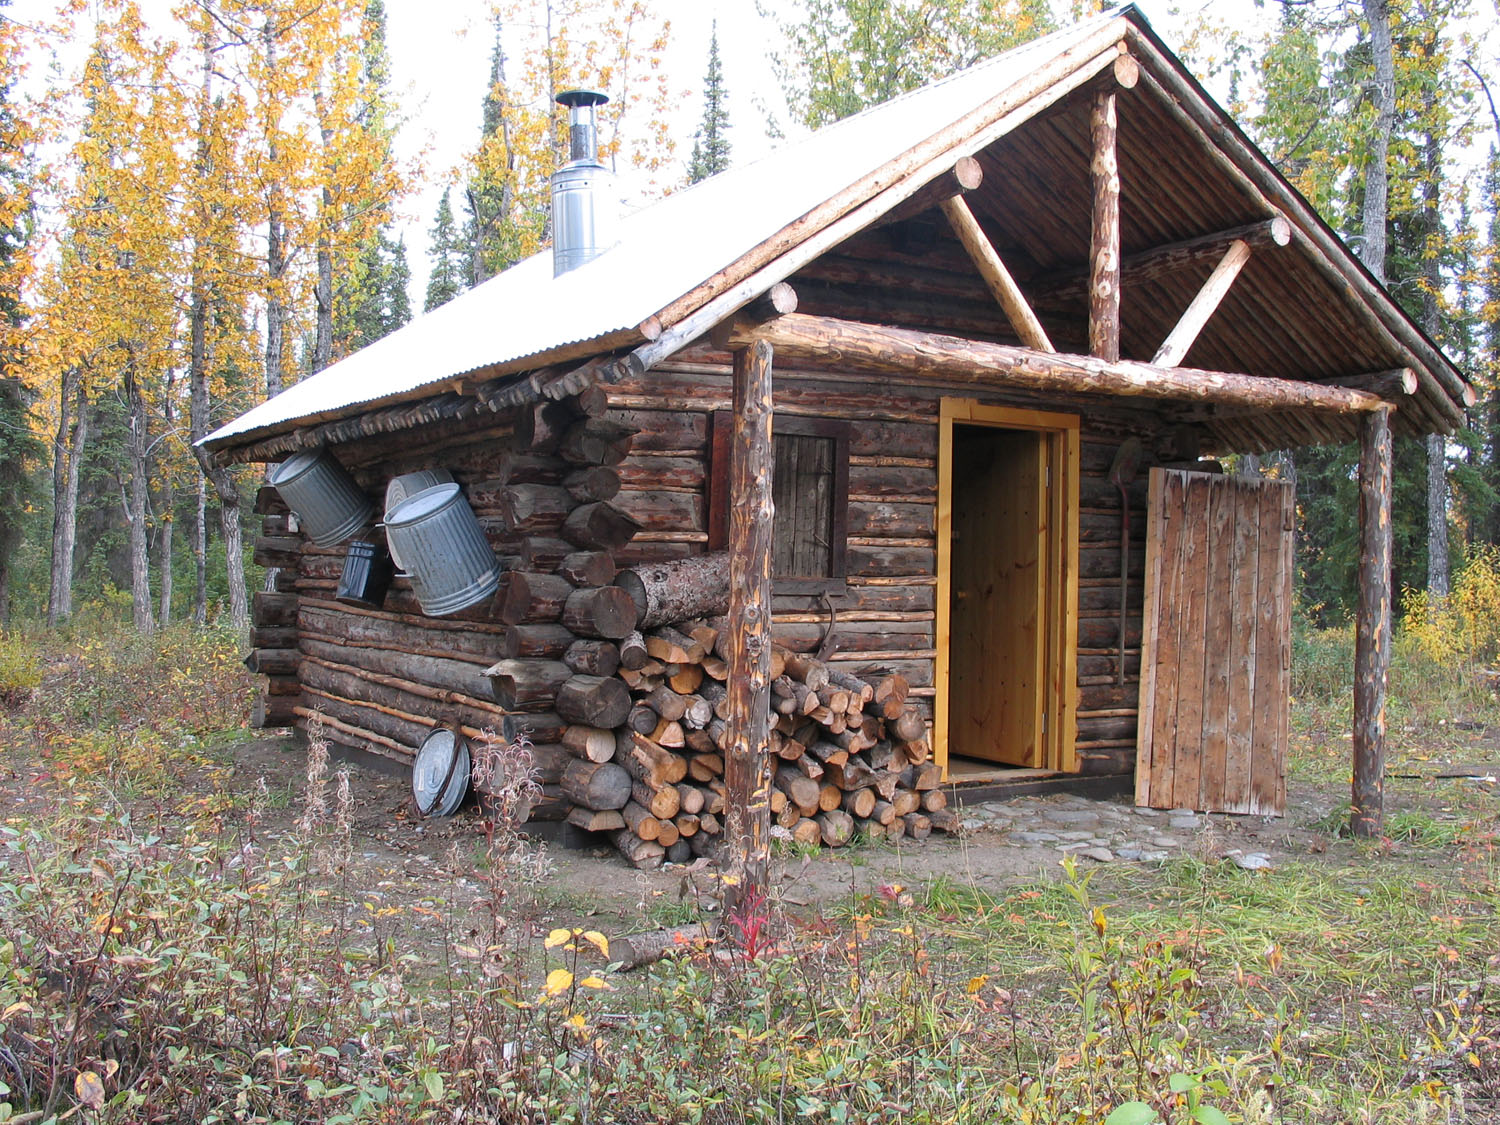 File:Lower East Fork Patrol Cabin